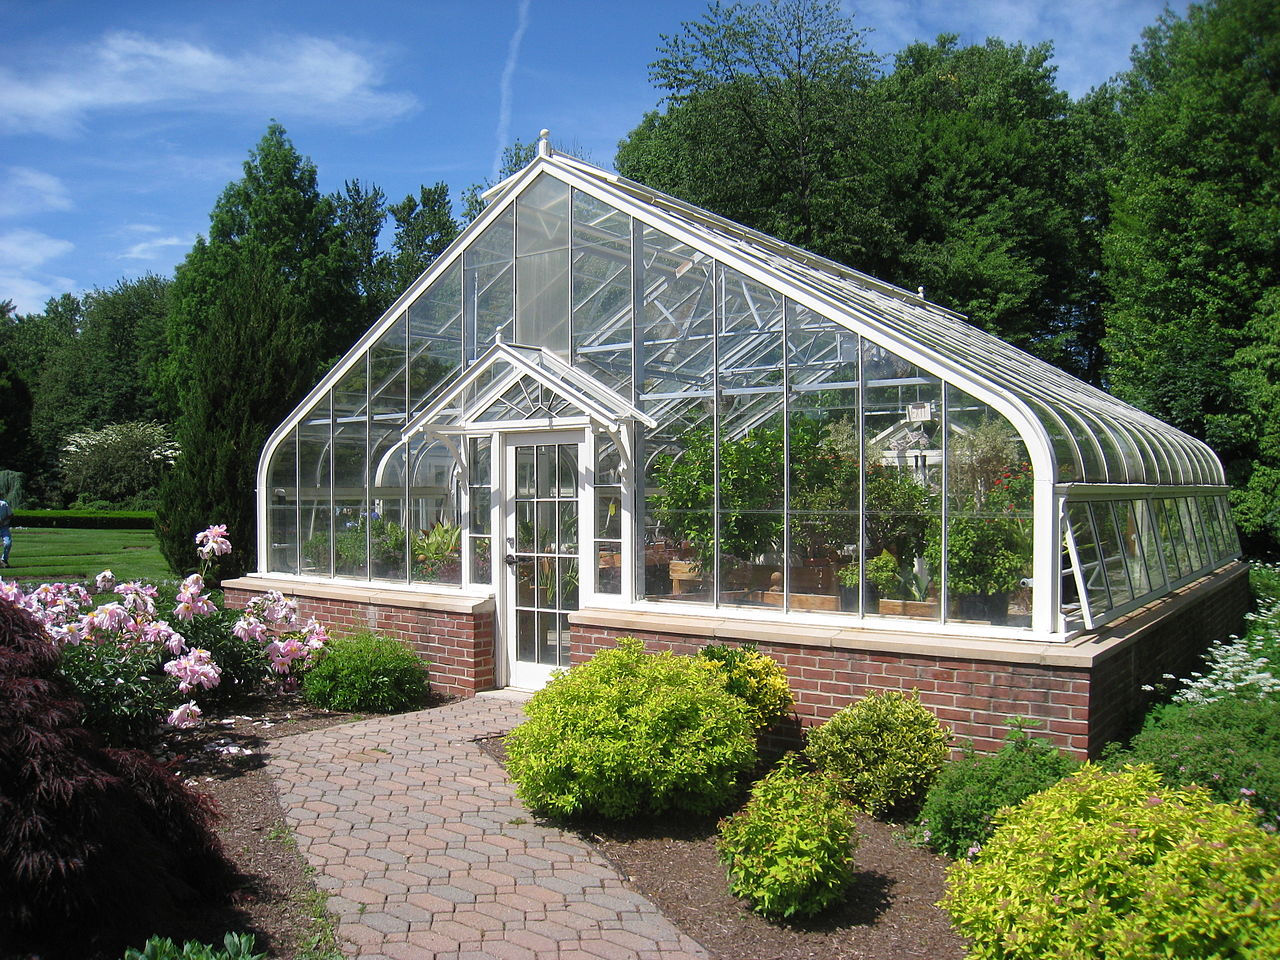 One of the historic, yet still-working, greenhouses.